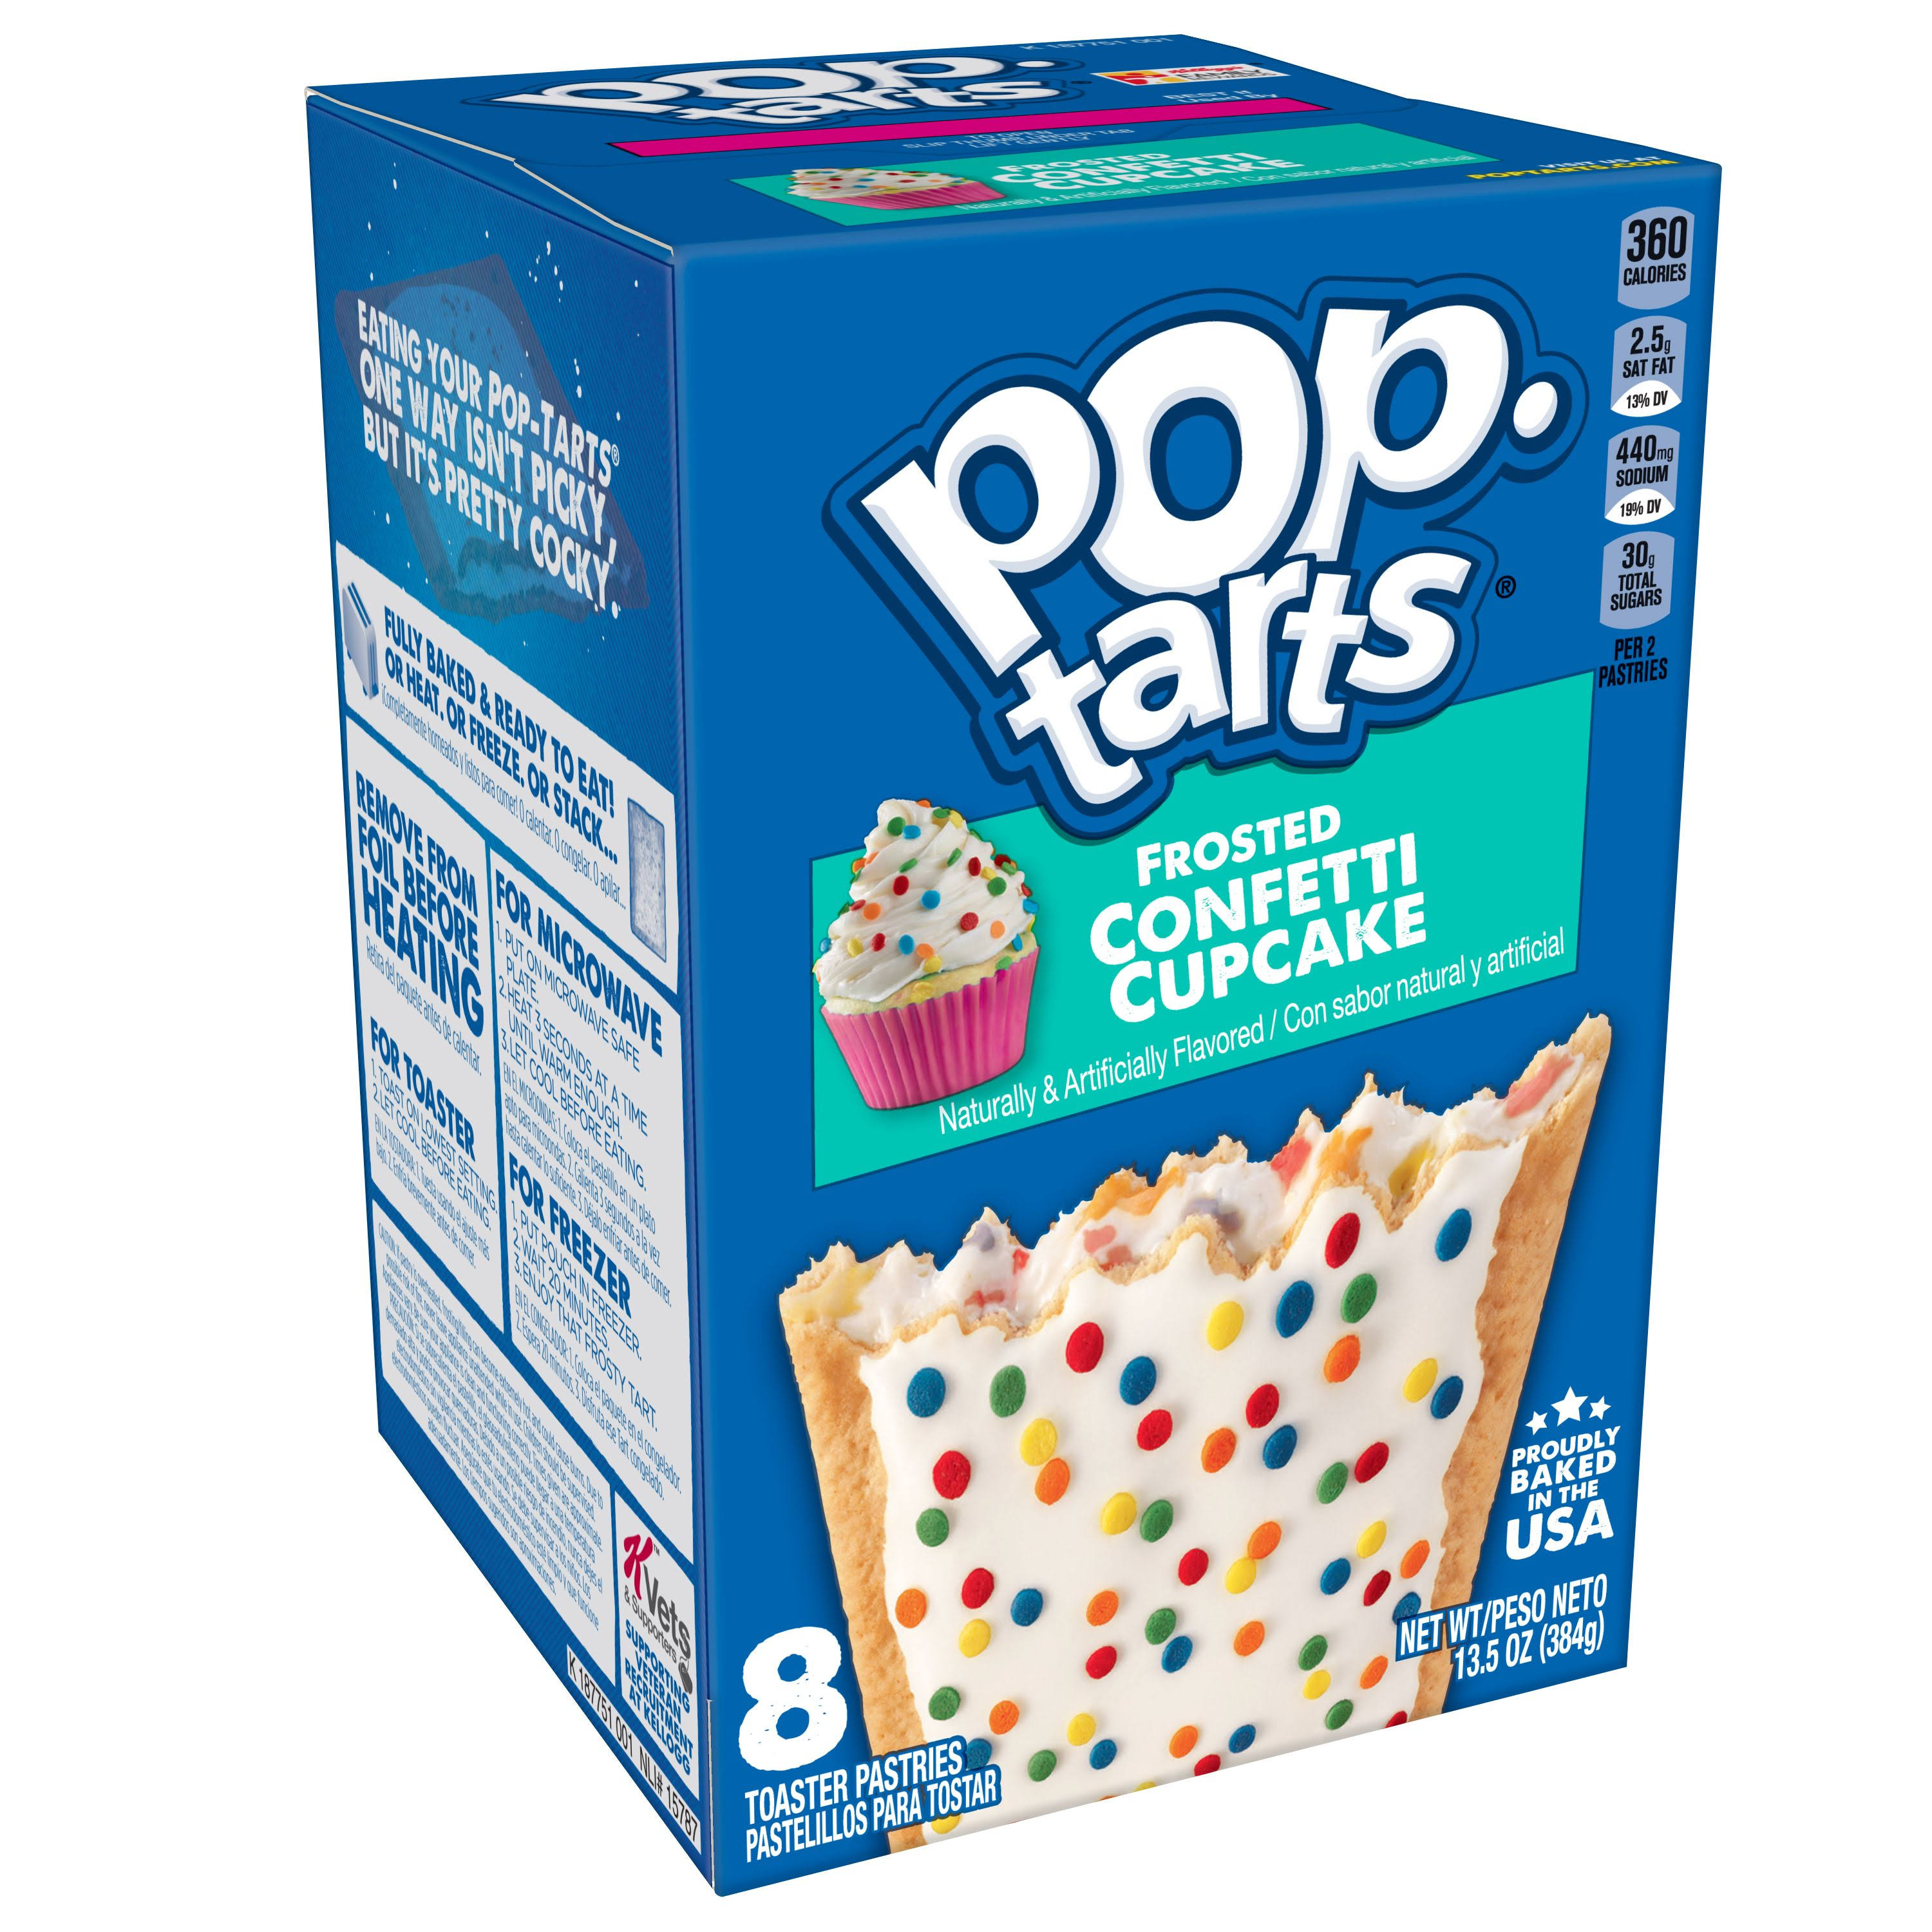 Pop Tarts Toaster Pastries, Confetti Cupcake, Frosted - 8 toaster pastries, 13.5 oz